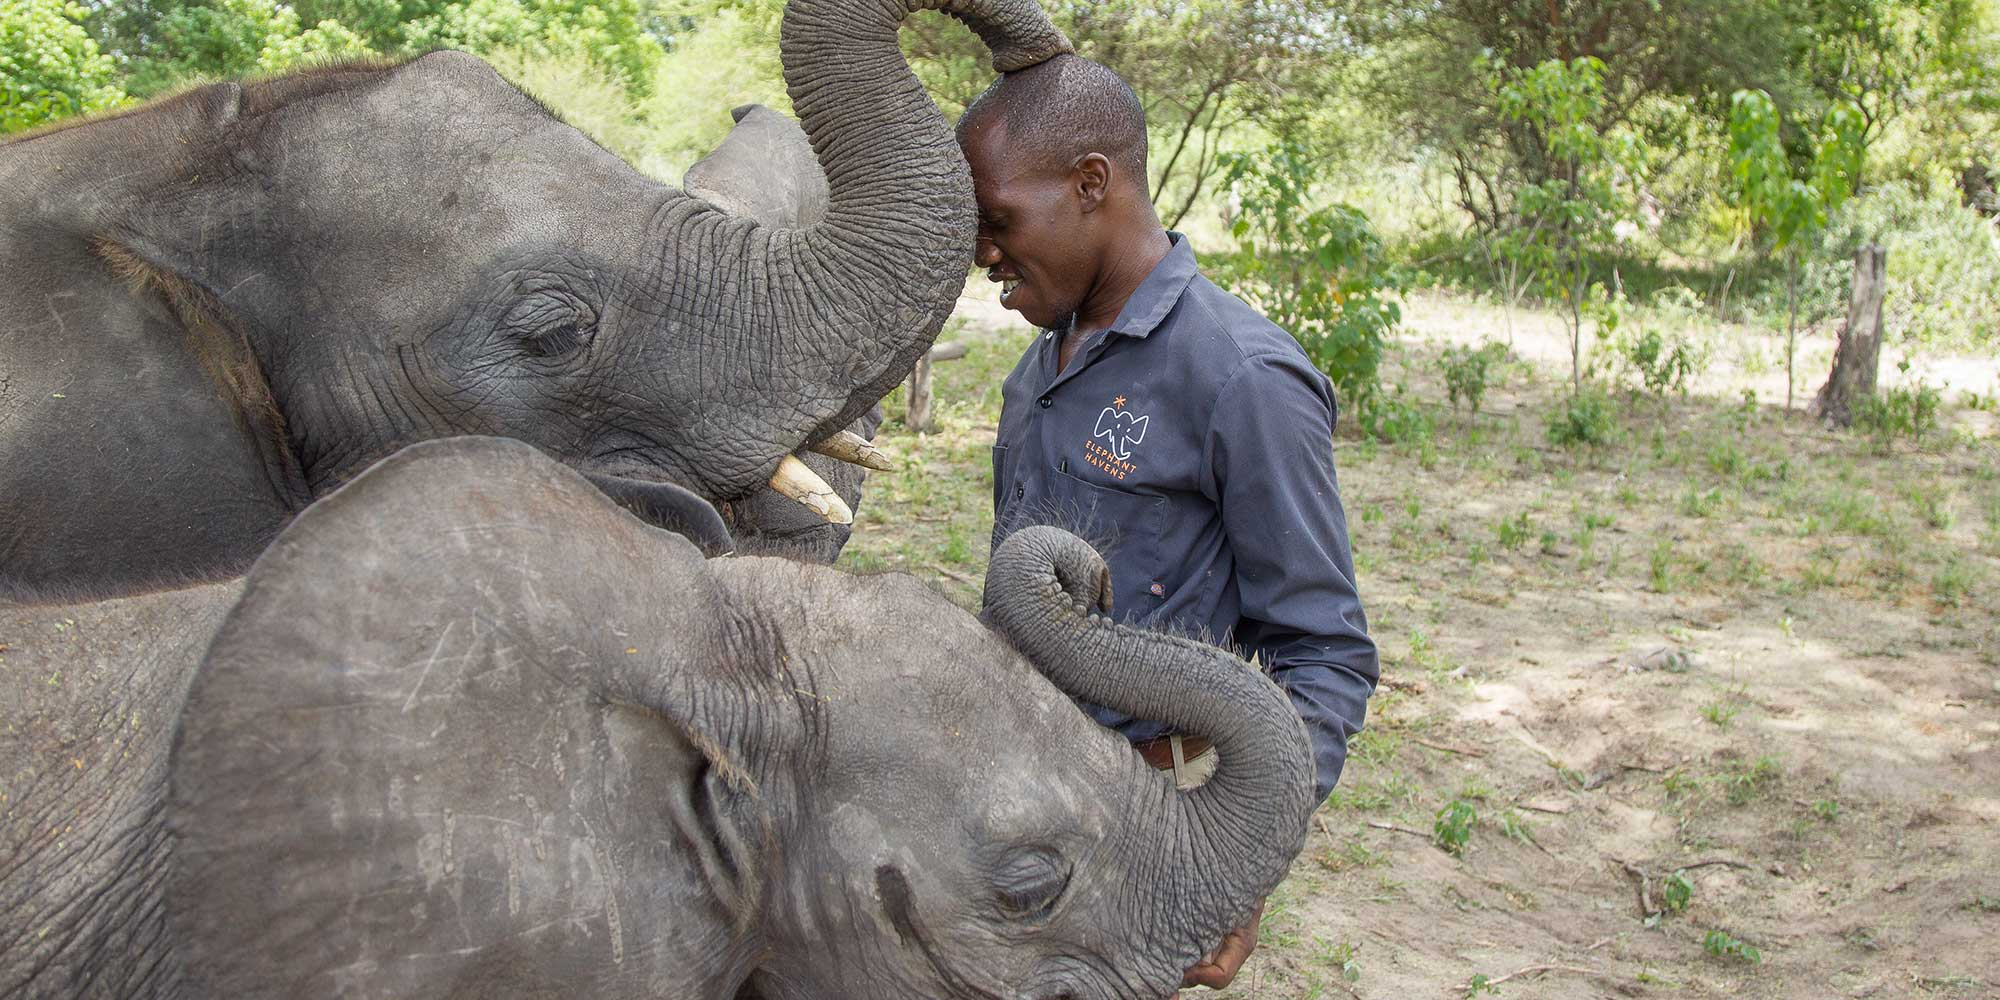 Elephant Havens Handler and Baby Elephants